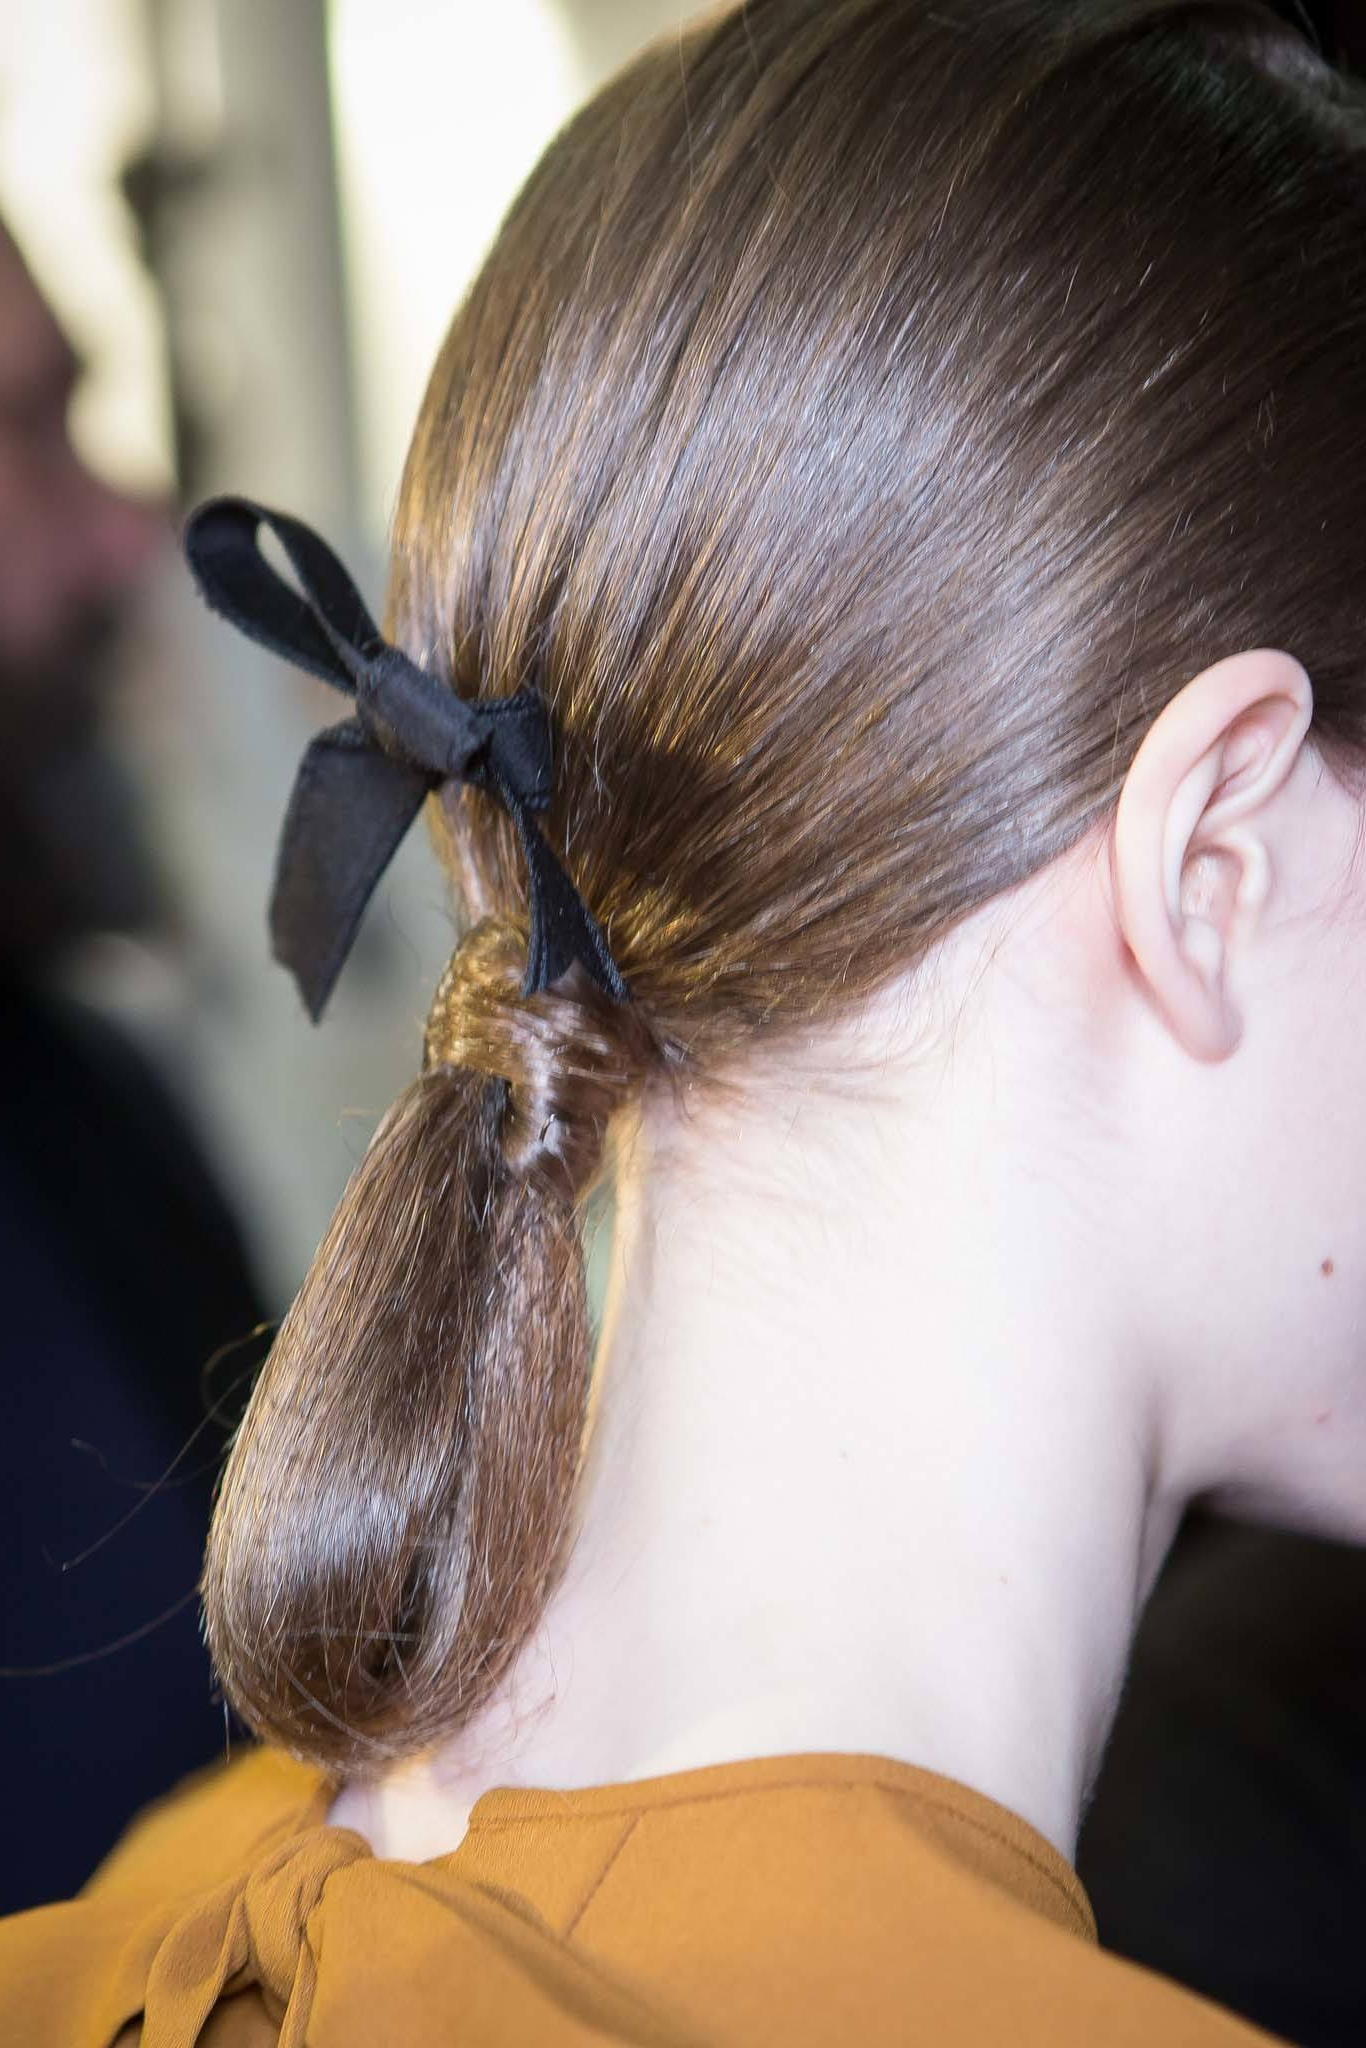 Well Known High Looped Ponytail Hairstyles With Hair Wrap Within Party Hairstyles For Medium Hair: 7 Looks For Every Dress (Gallery 20 of 20)